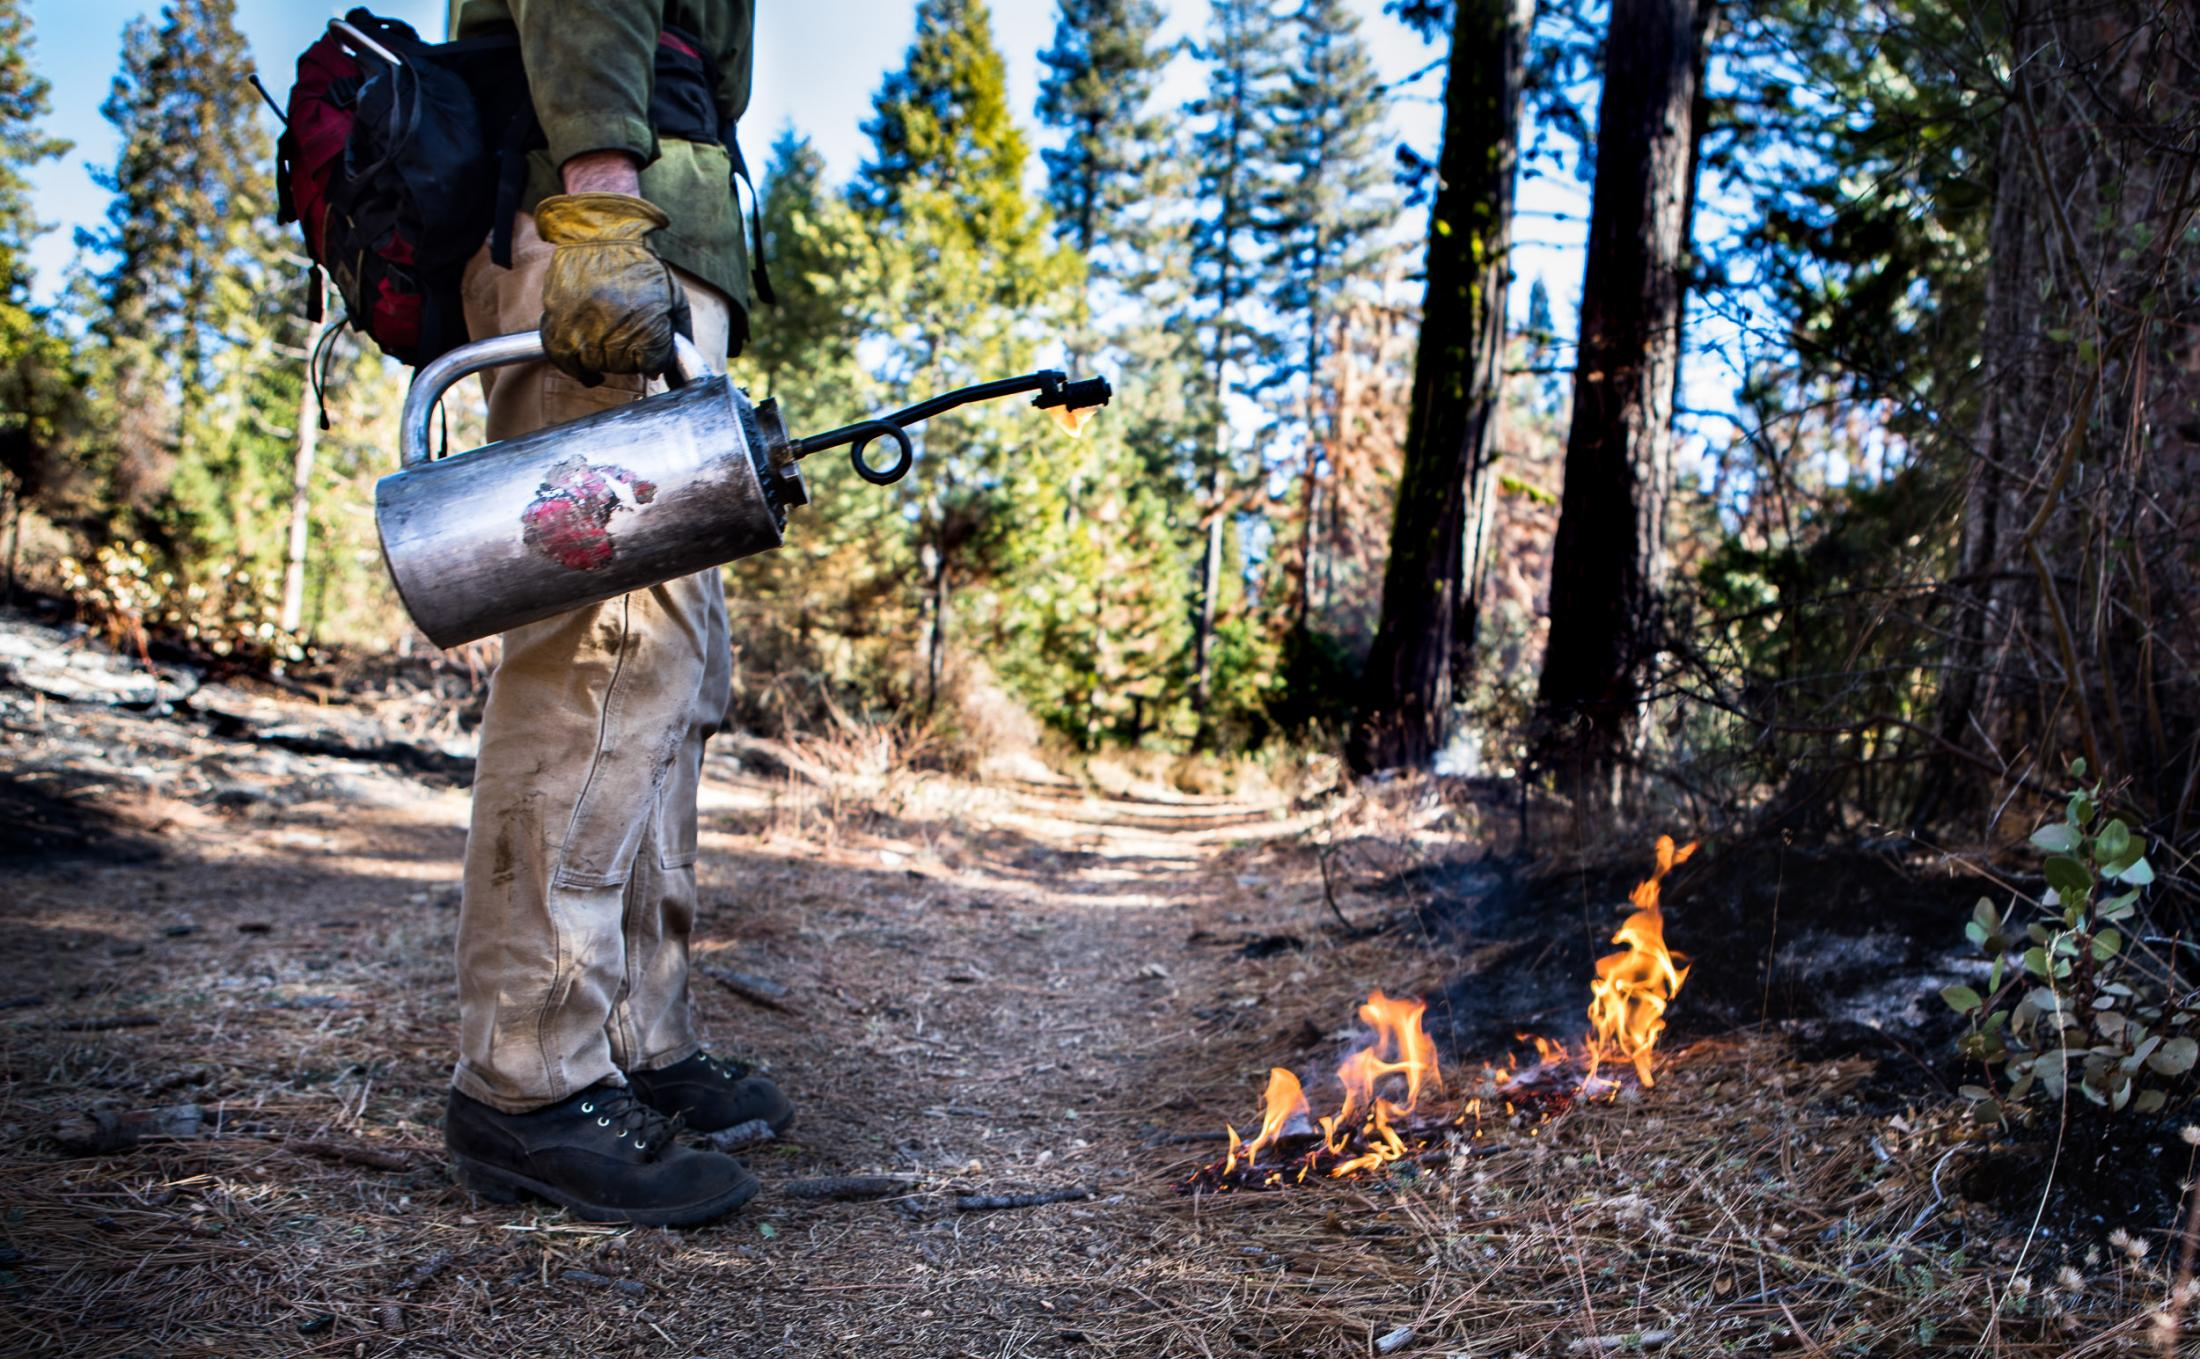 """A prescribed fire is lit with a mix of 3:1 diesel to gas. Historically, natural fires tended to burn in the West during summer and fall. Prescribed fires are conducted in the """"shoulder seasons"""" on either end of summer when conditions are right as in Fall: wildlife has dispersed, the fire fuels are dry, and vegetation has deteriorated."""